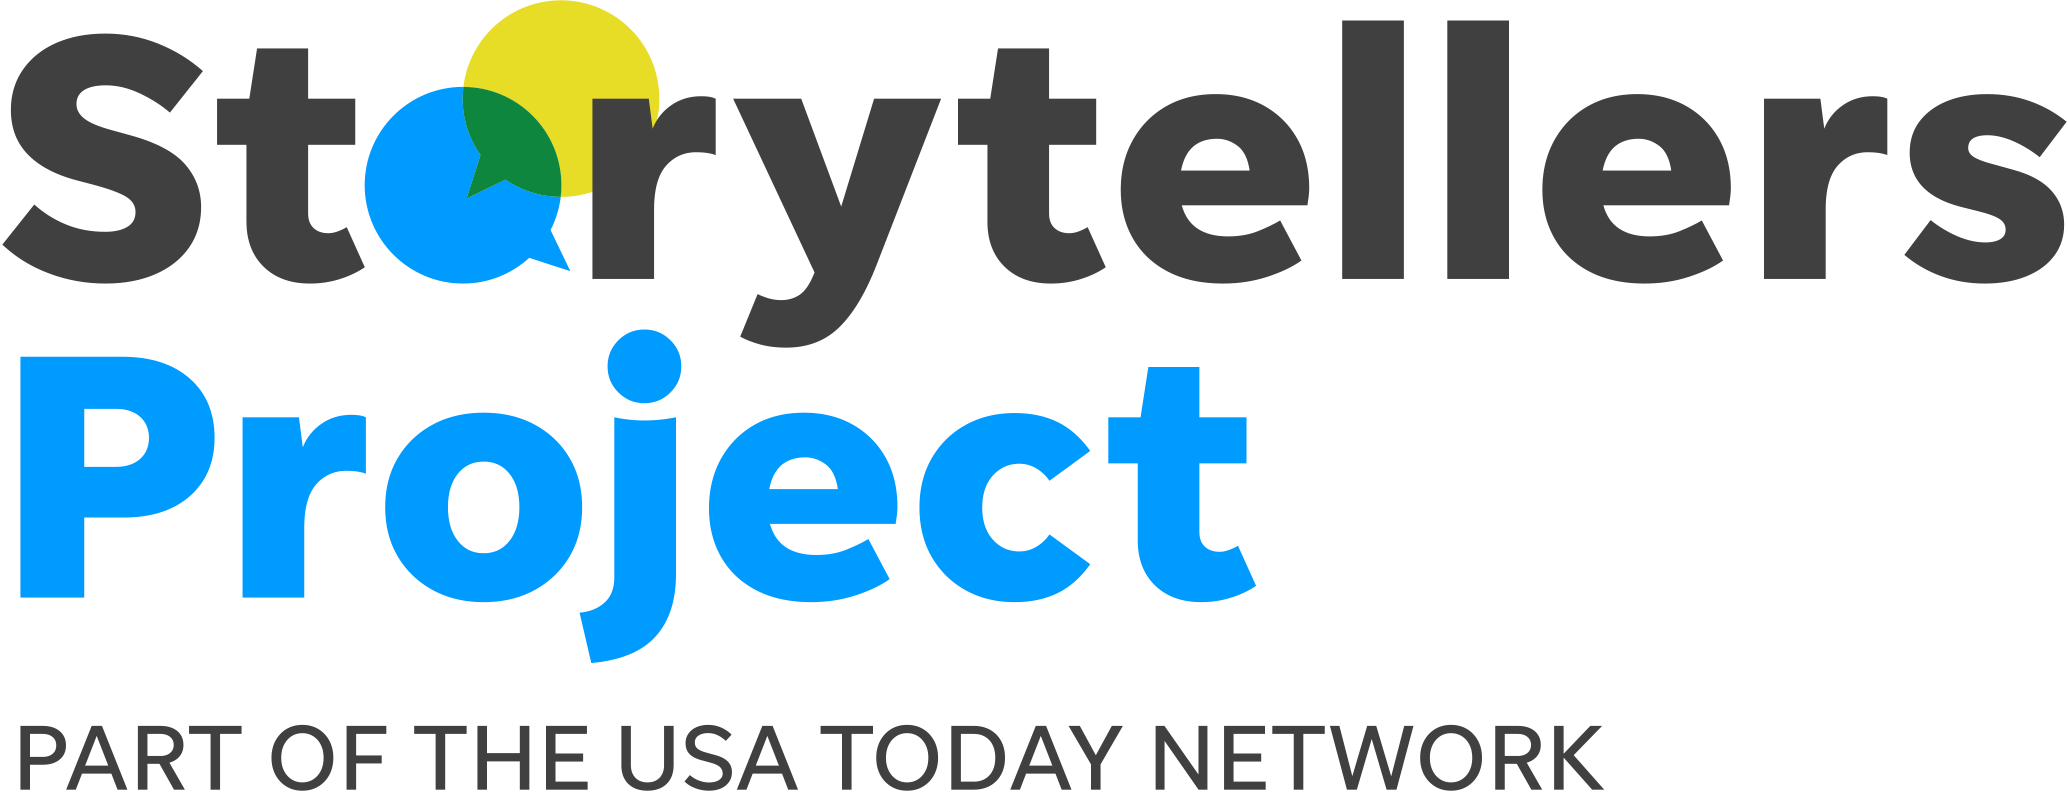 The Storytellers Project | part of the USA TODAY NETWORK